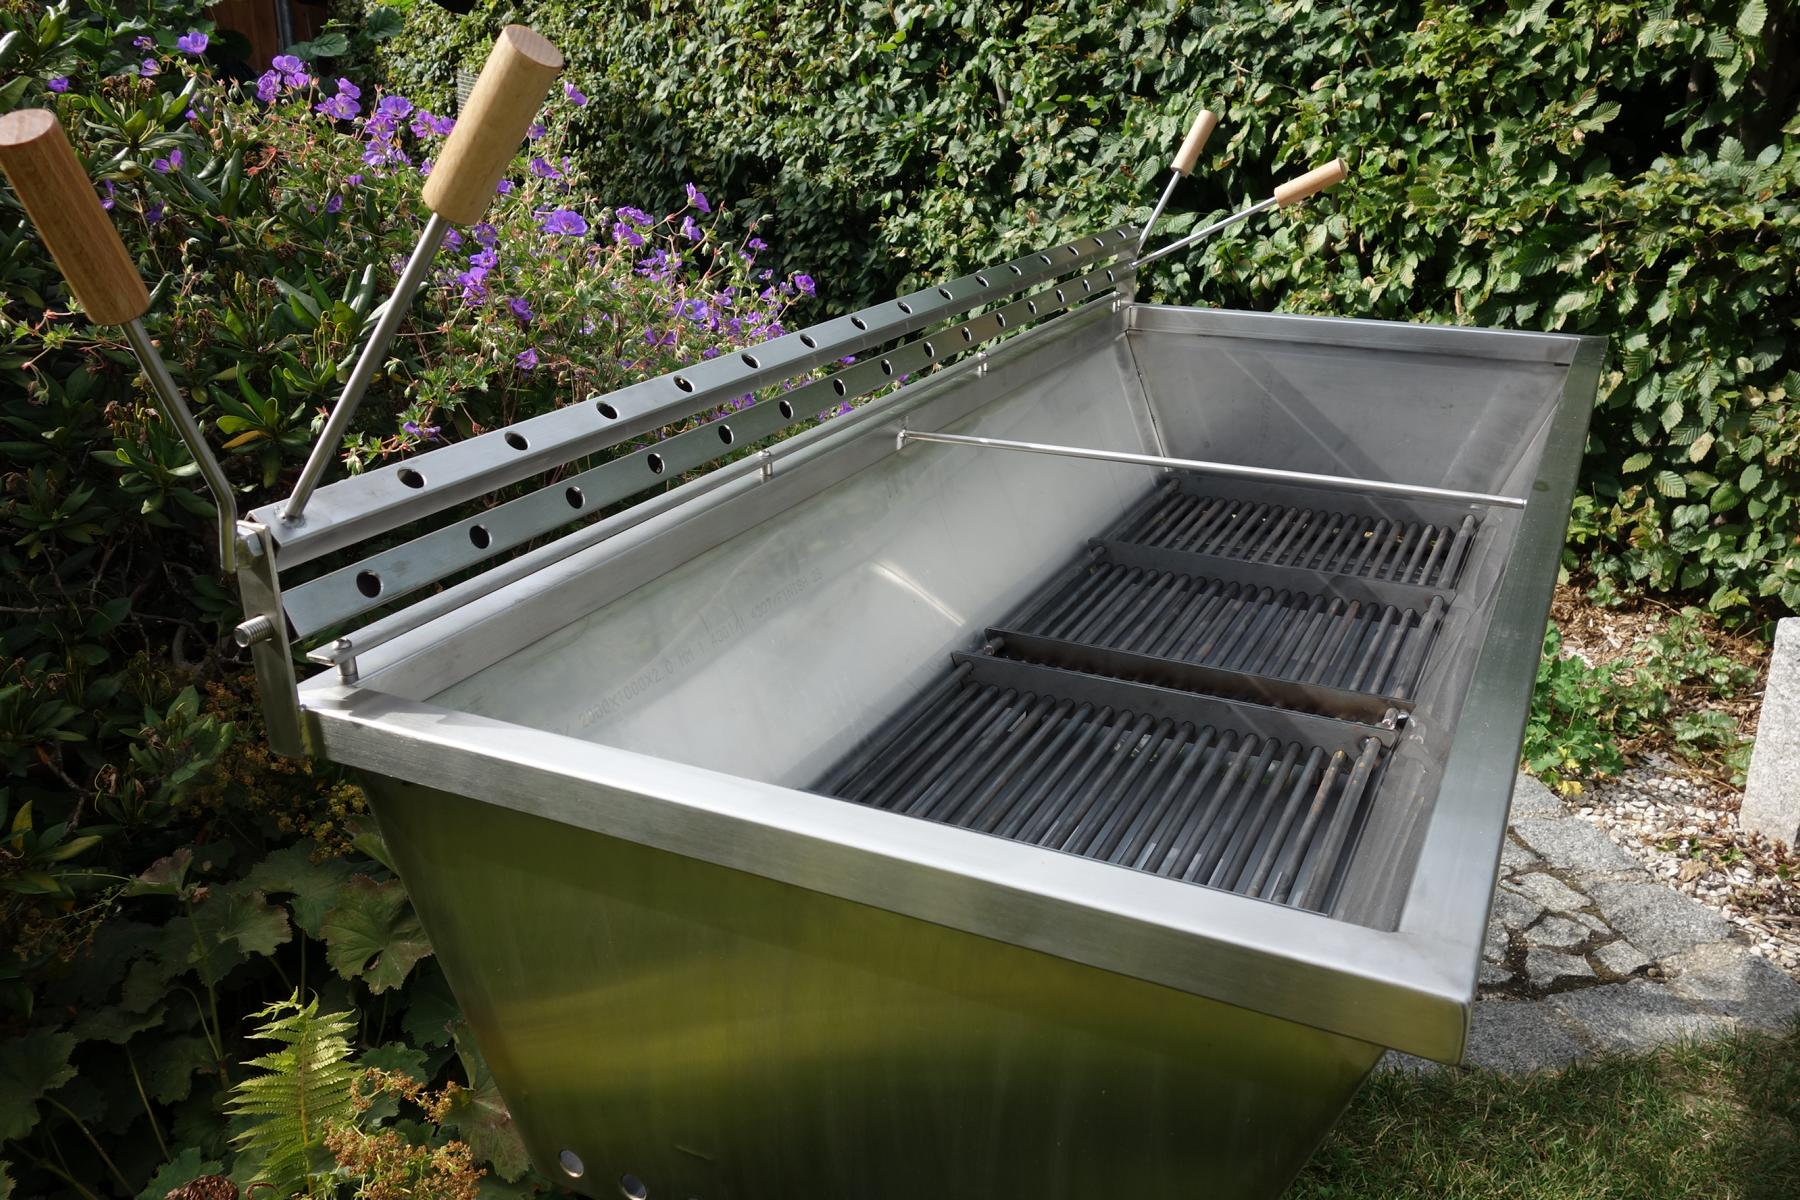 Fischgrill2